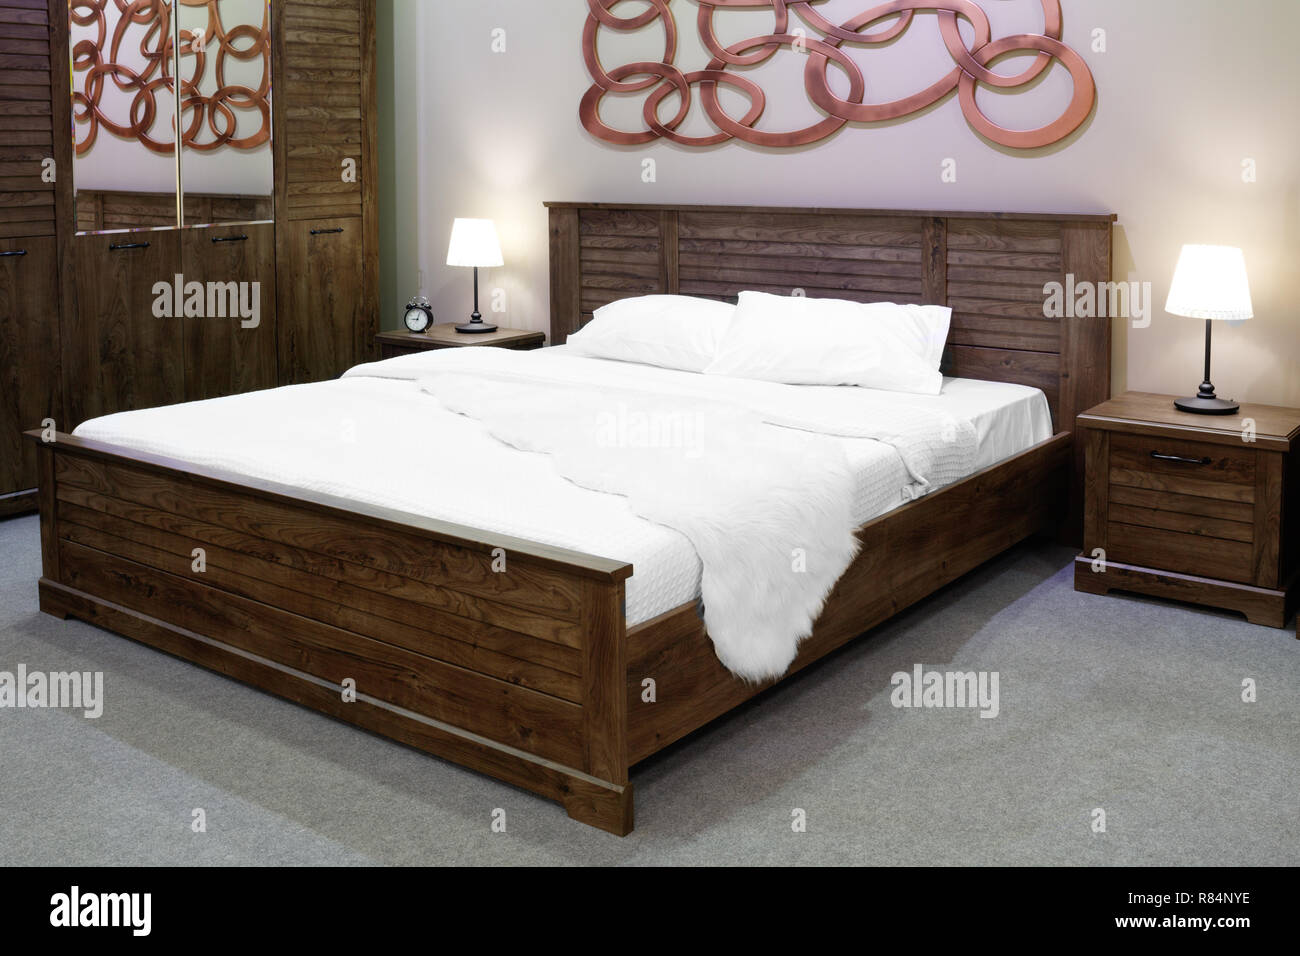 Luxury Modern And Wooden Rustic Style Bedroom In Brown And Beige